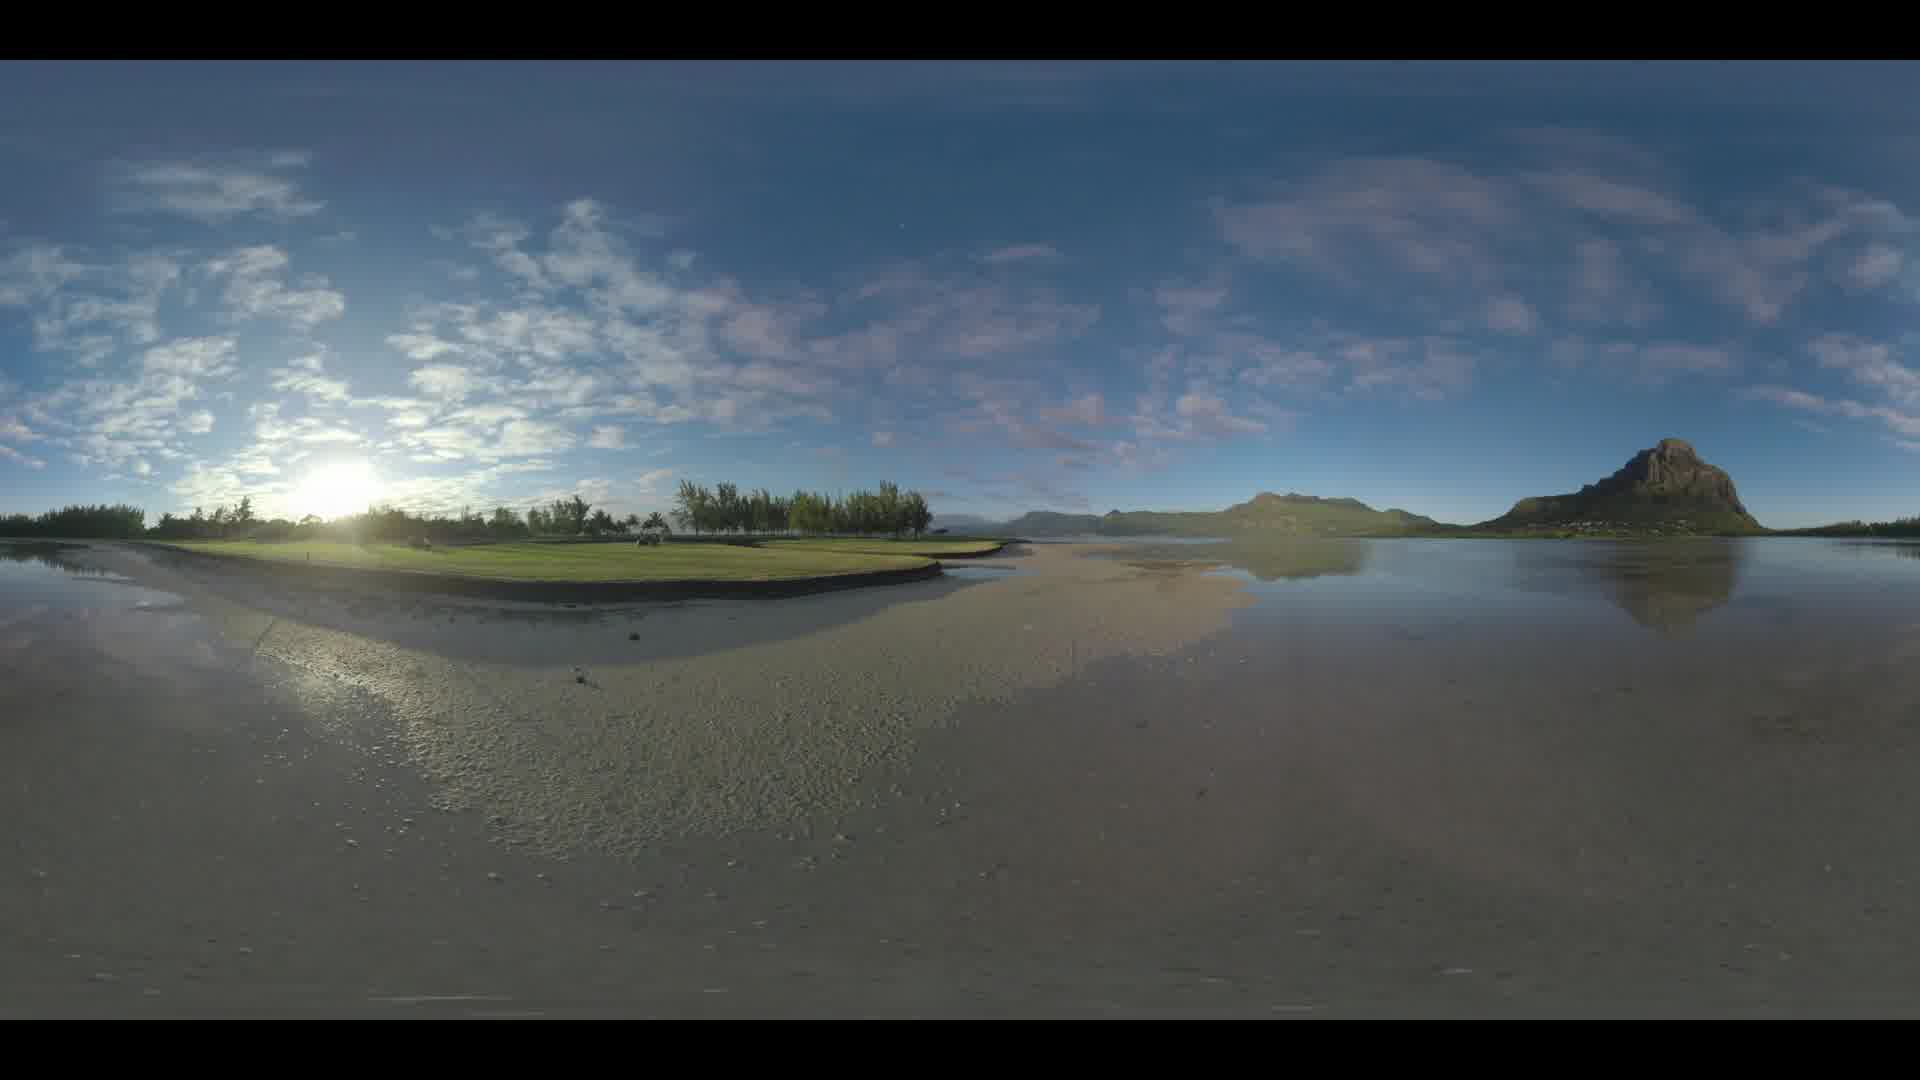 360 VR video. Timelapse shot of clouds sailing over mountains and Le Morne Brabant. Carts driving on waterside golf course, bright evening sun shining. Mauritius landscape